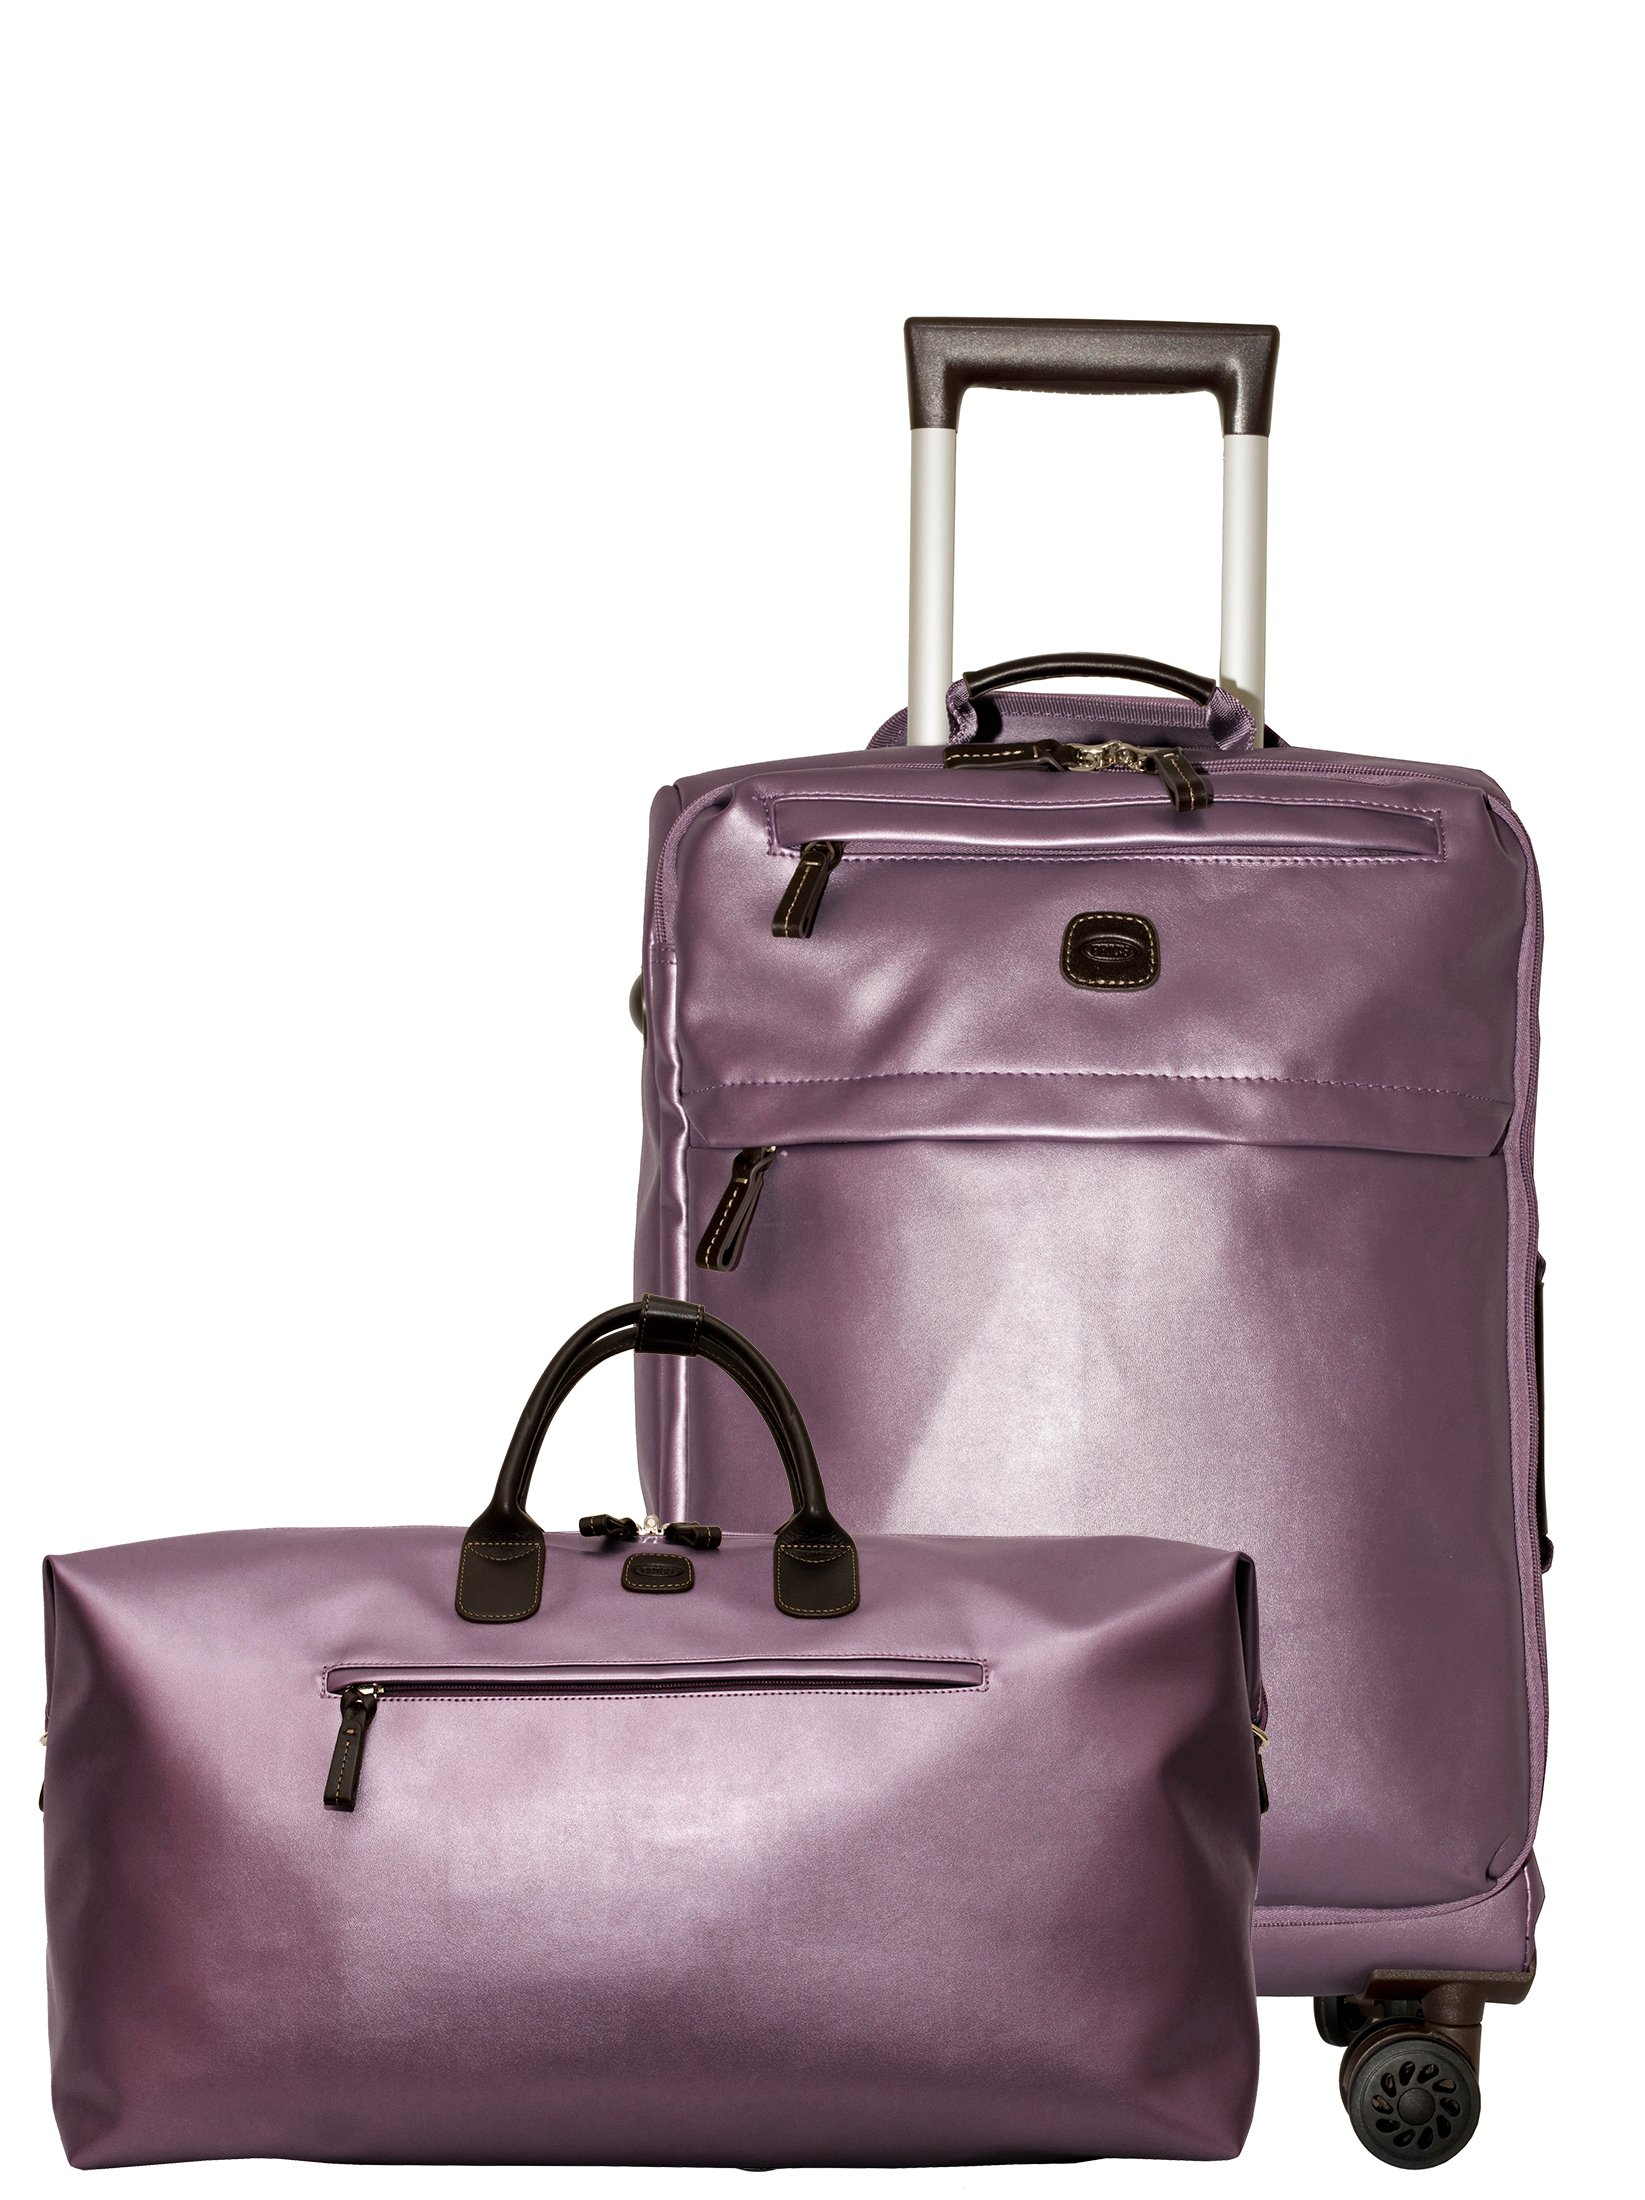 Bric's X Travel 21 International Carry On Spinner and Deluxe Weekender Duffel Set (Metallic Lilac w/ Deluxe Duffle)